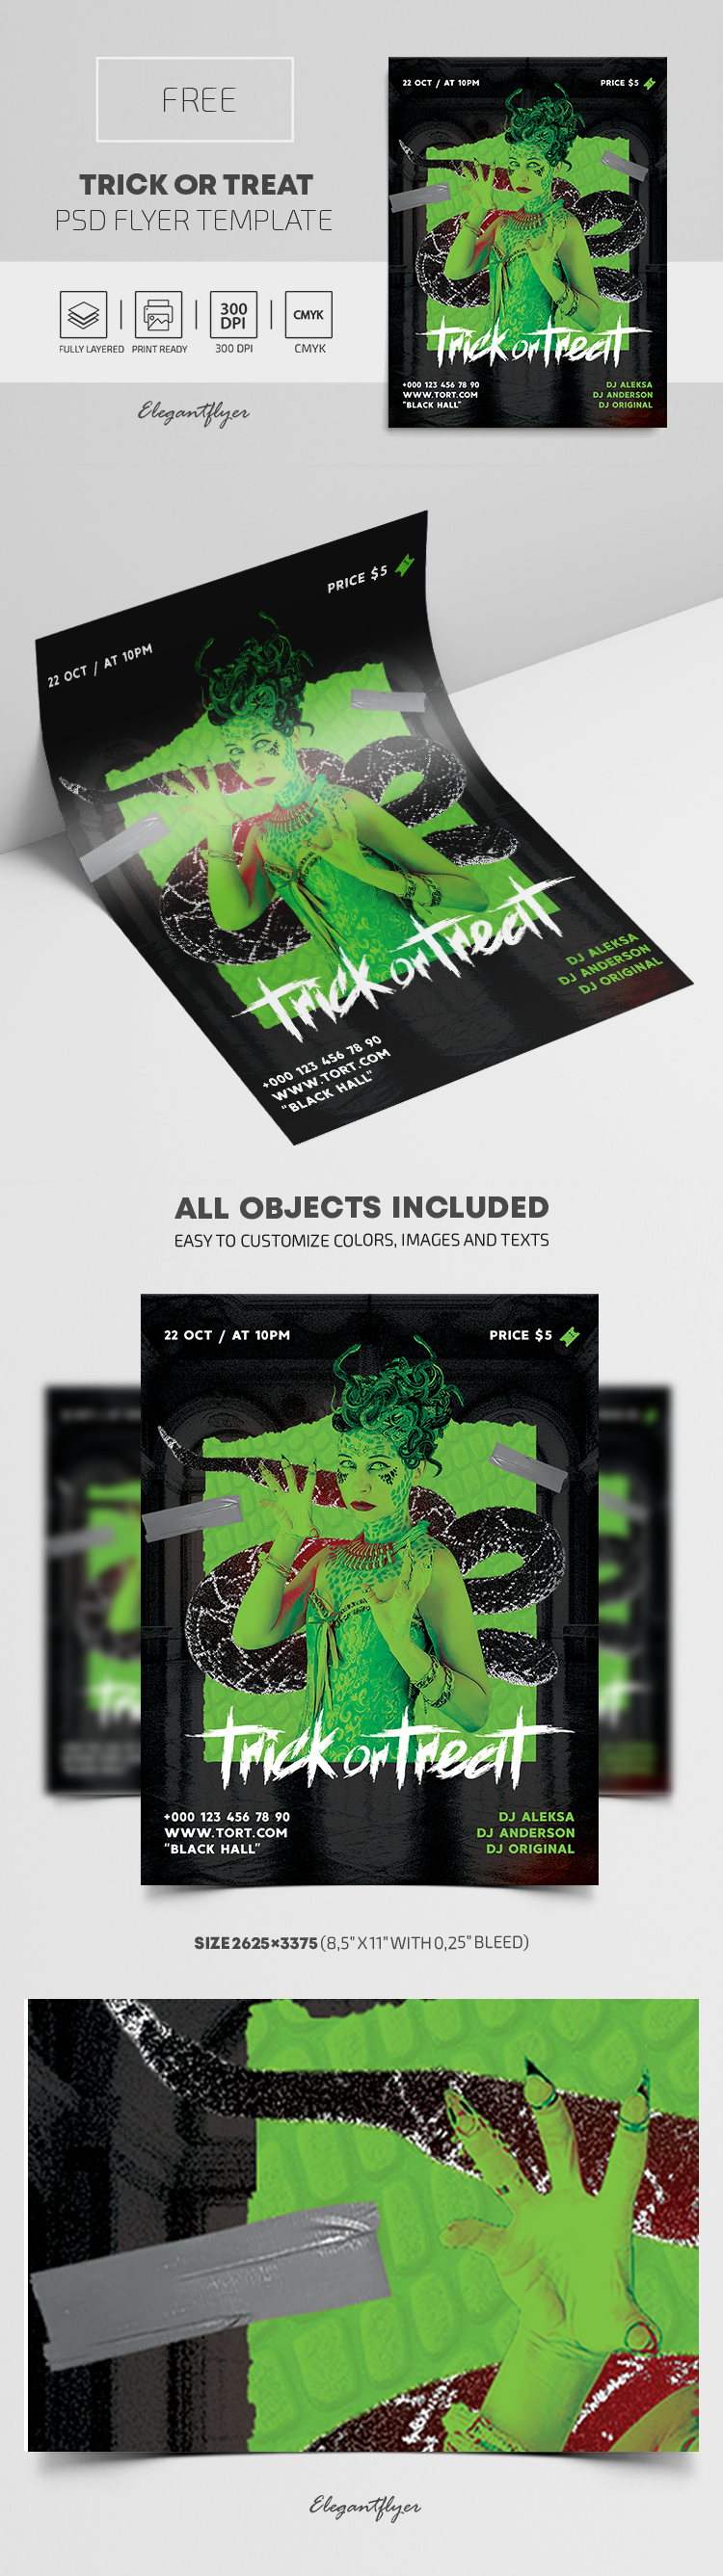 Trick or Treat – Free Flyer PSD Template